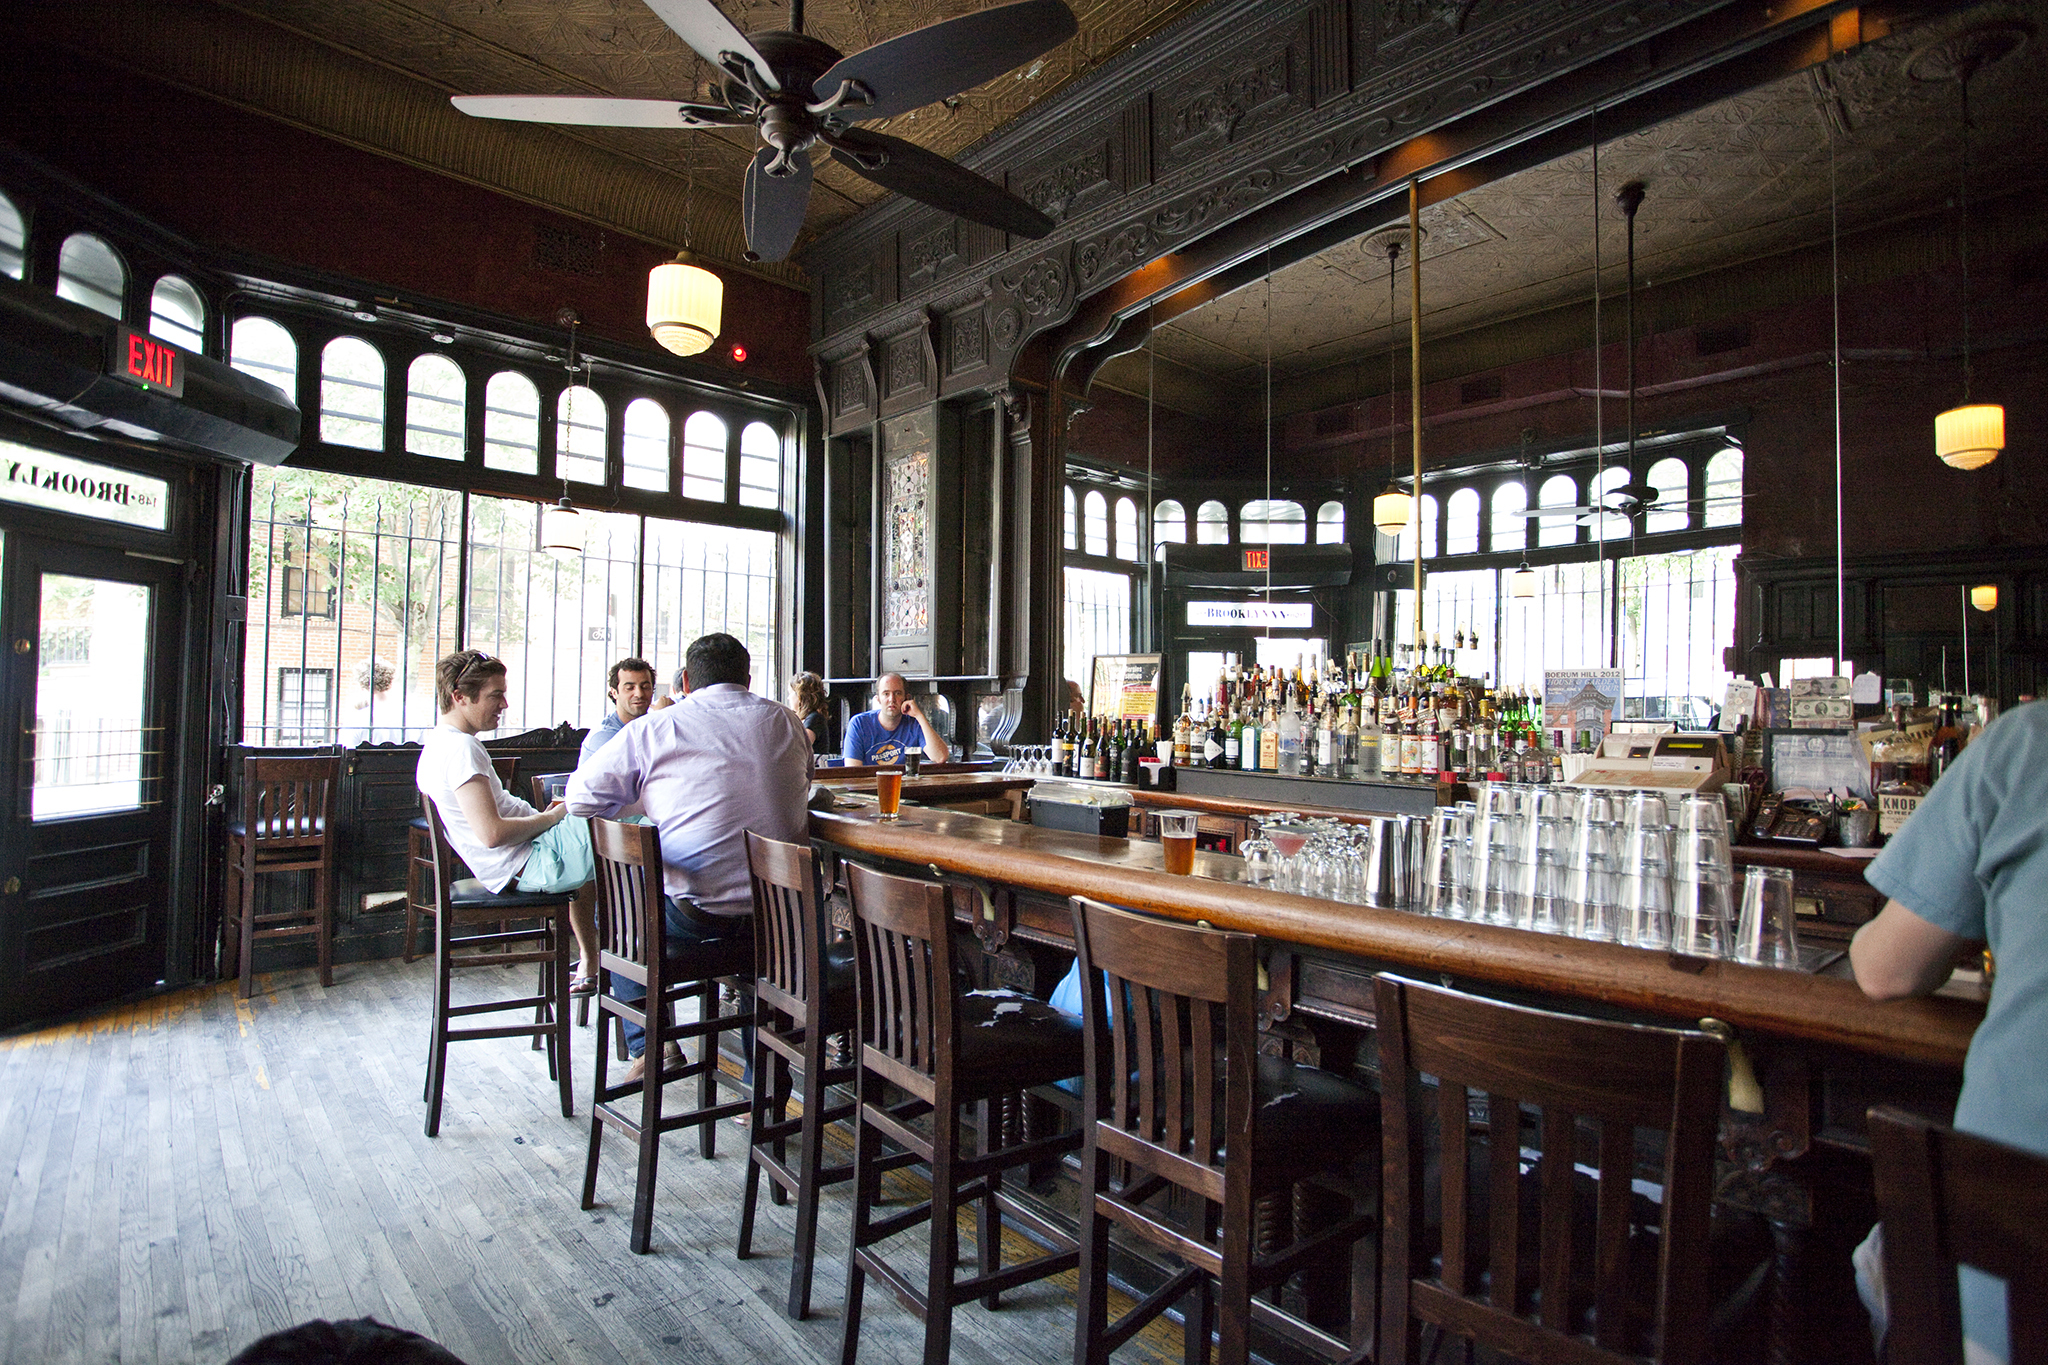 Best Boerum Hill bars